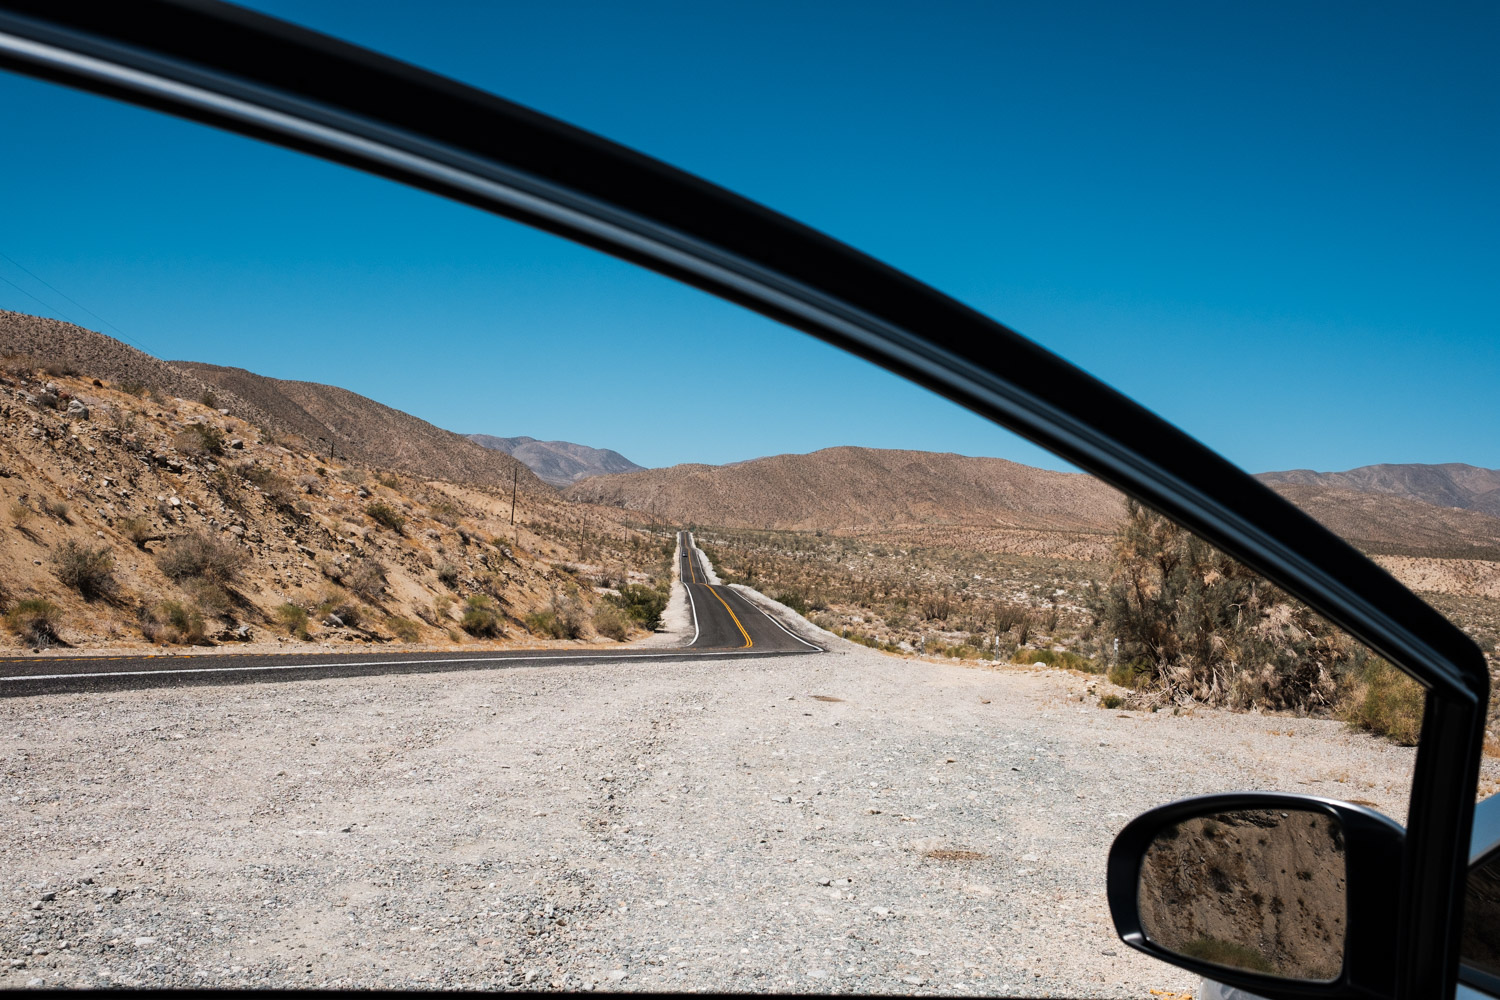 Cutting through Anza-Borrego